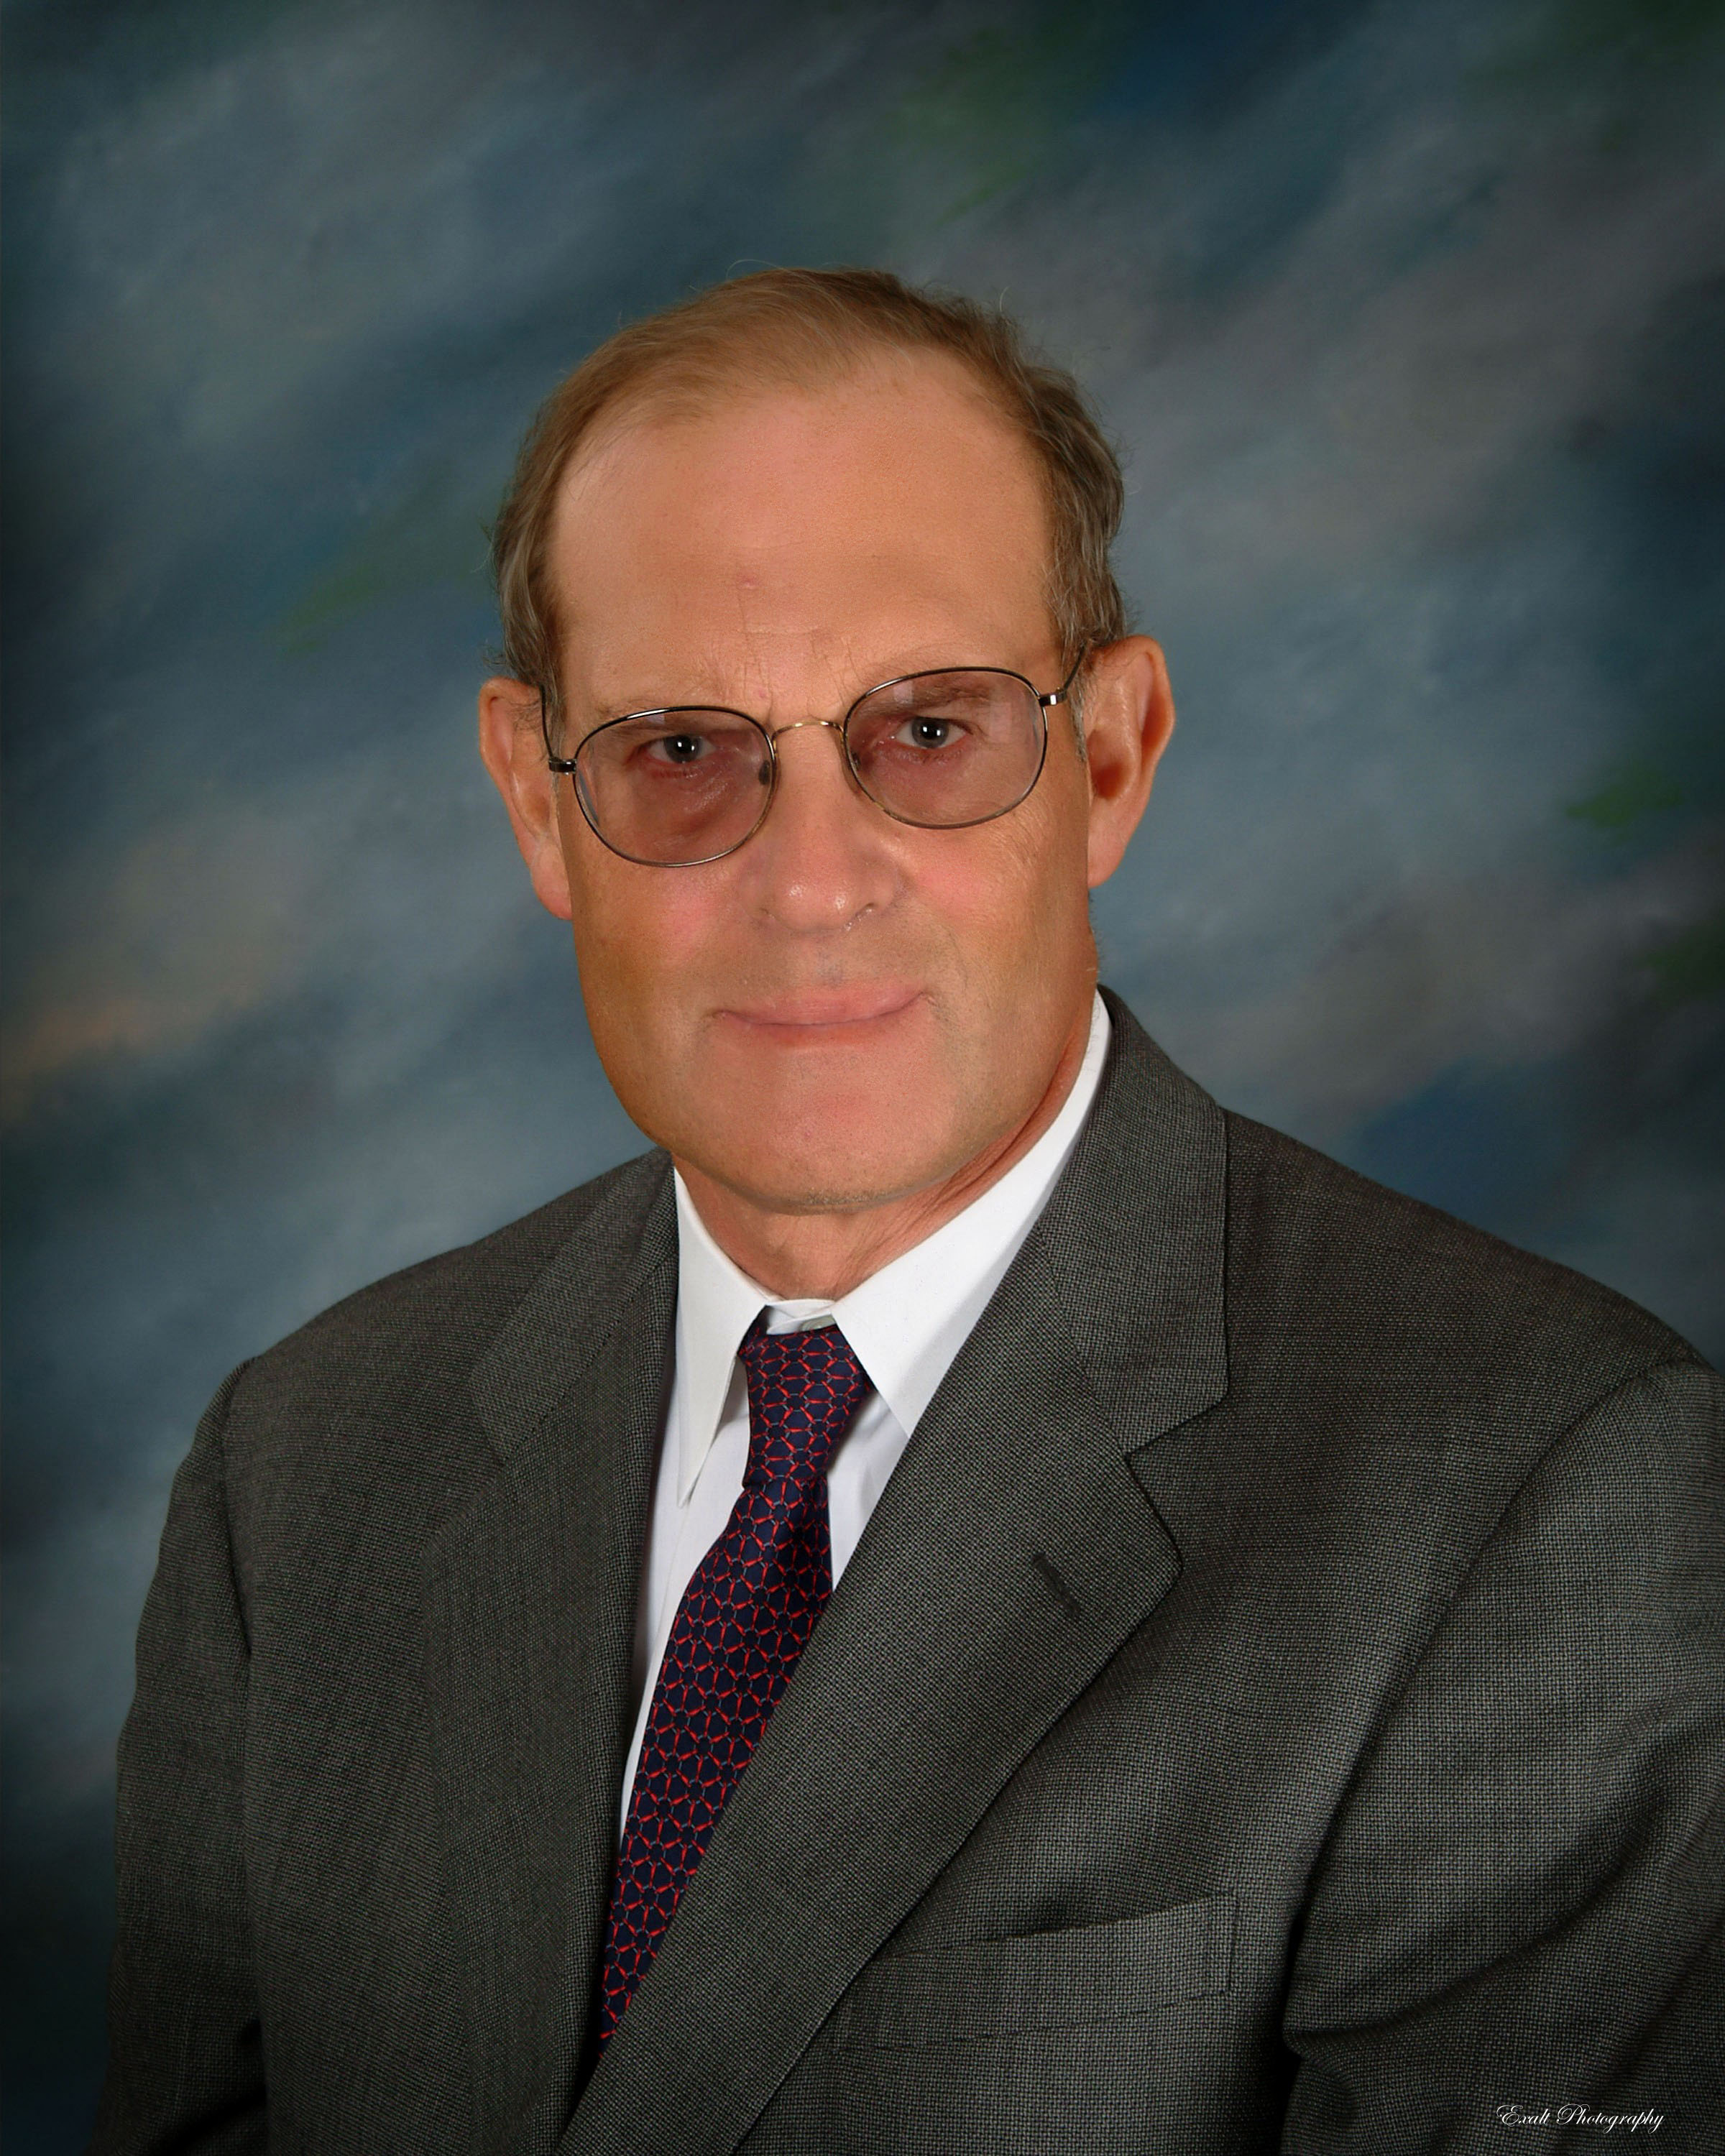 John Ginsbury, financial advisor Barrington RI